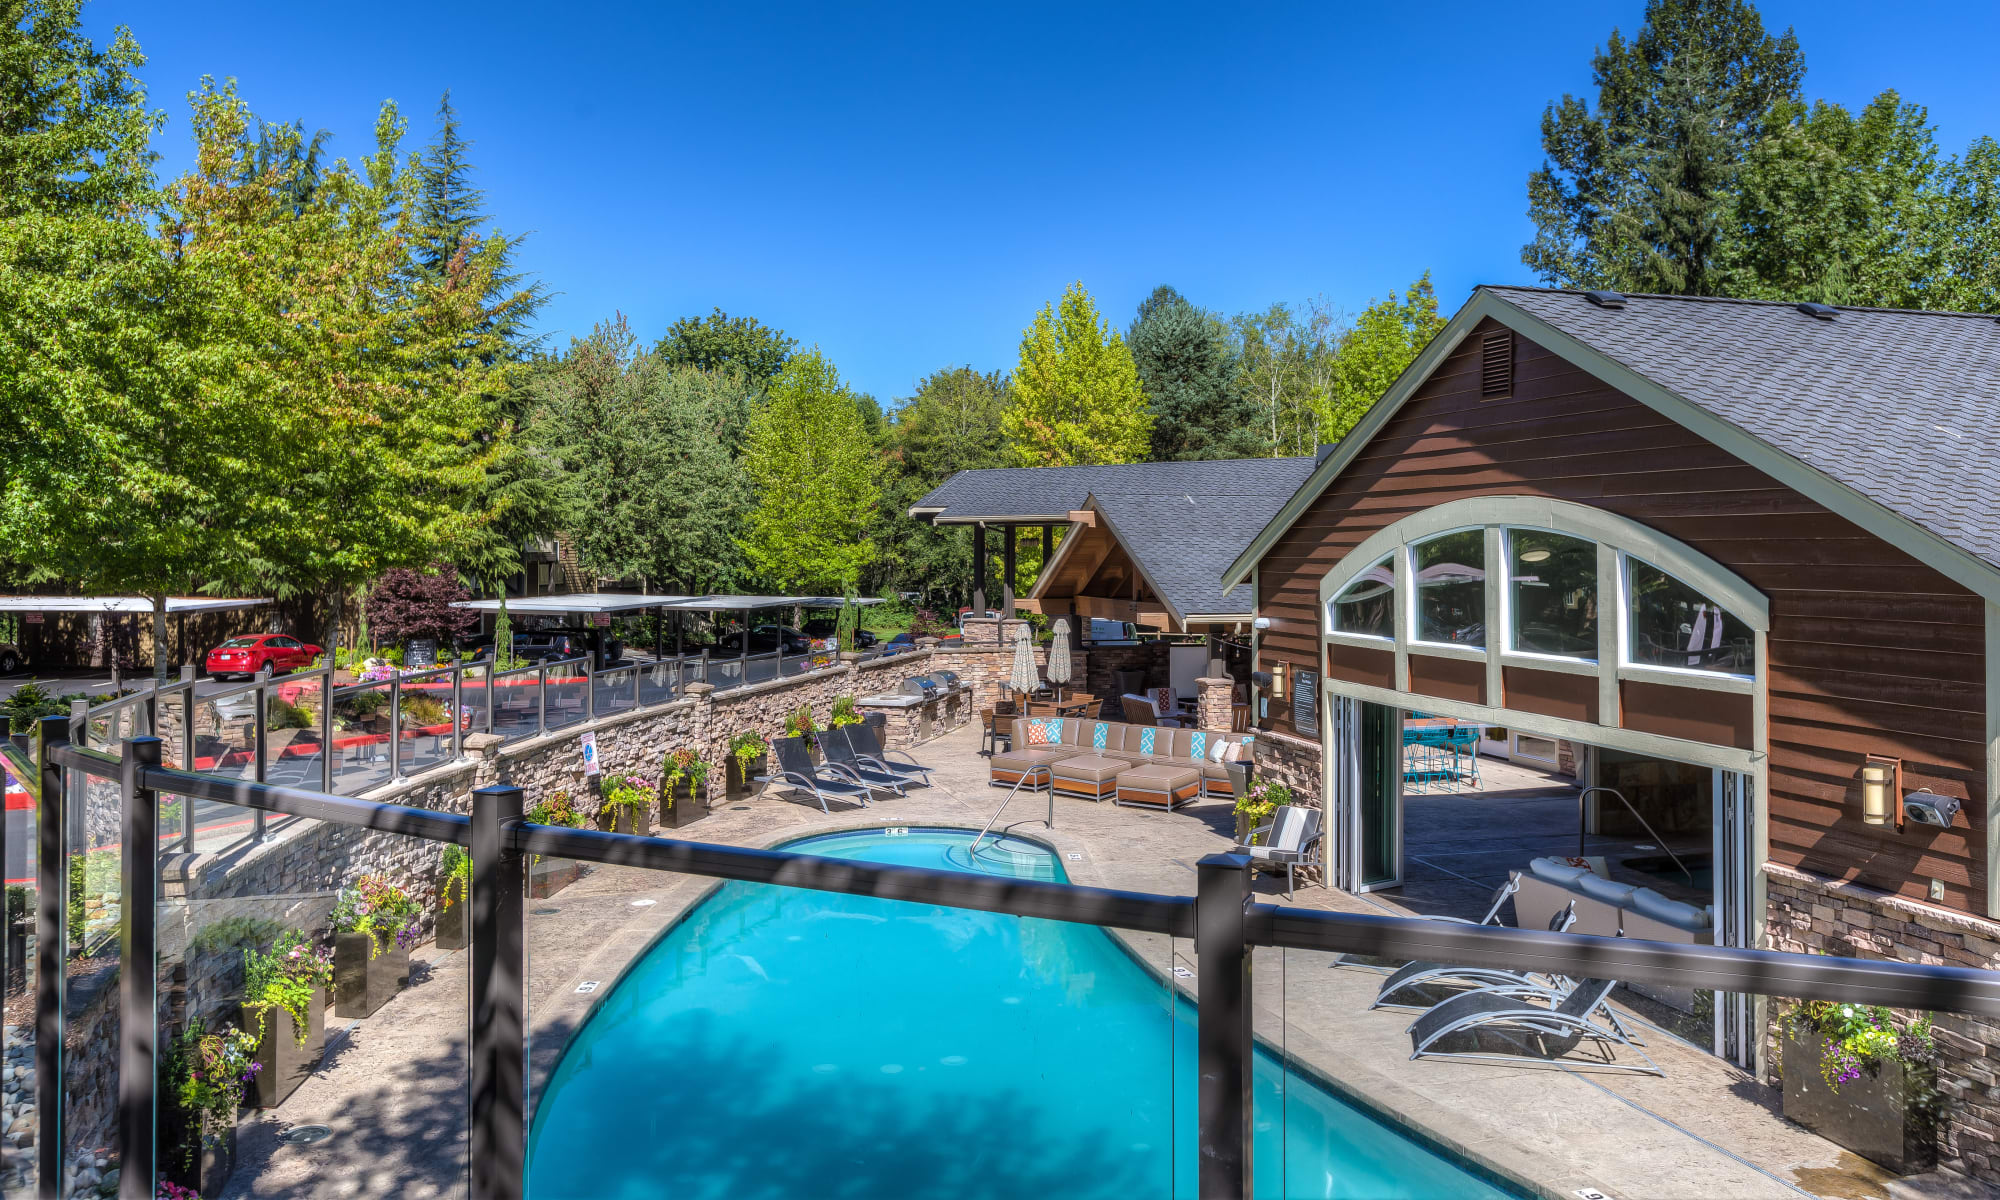 Apartments at The Preserve at Forbes Creek in Kirkland, Washington